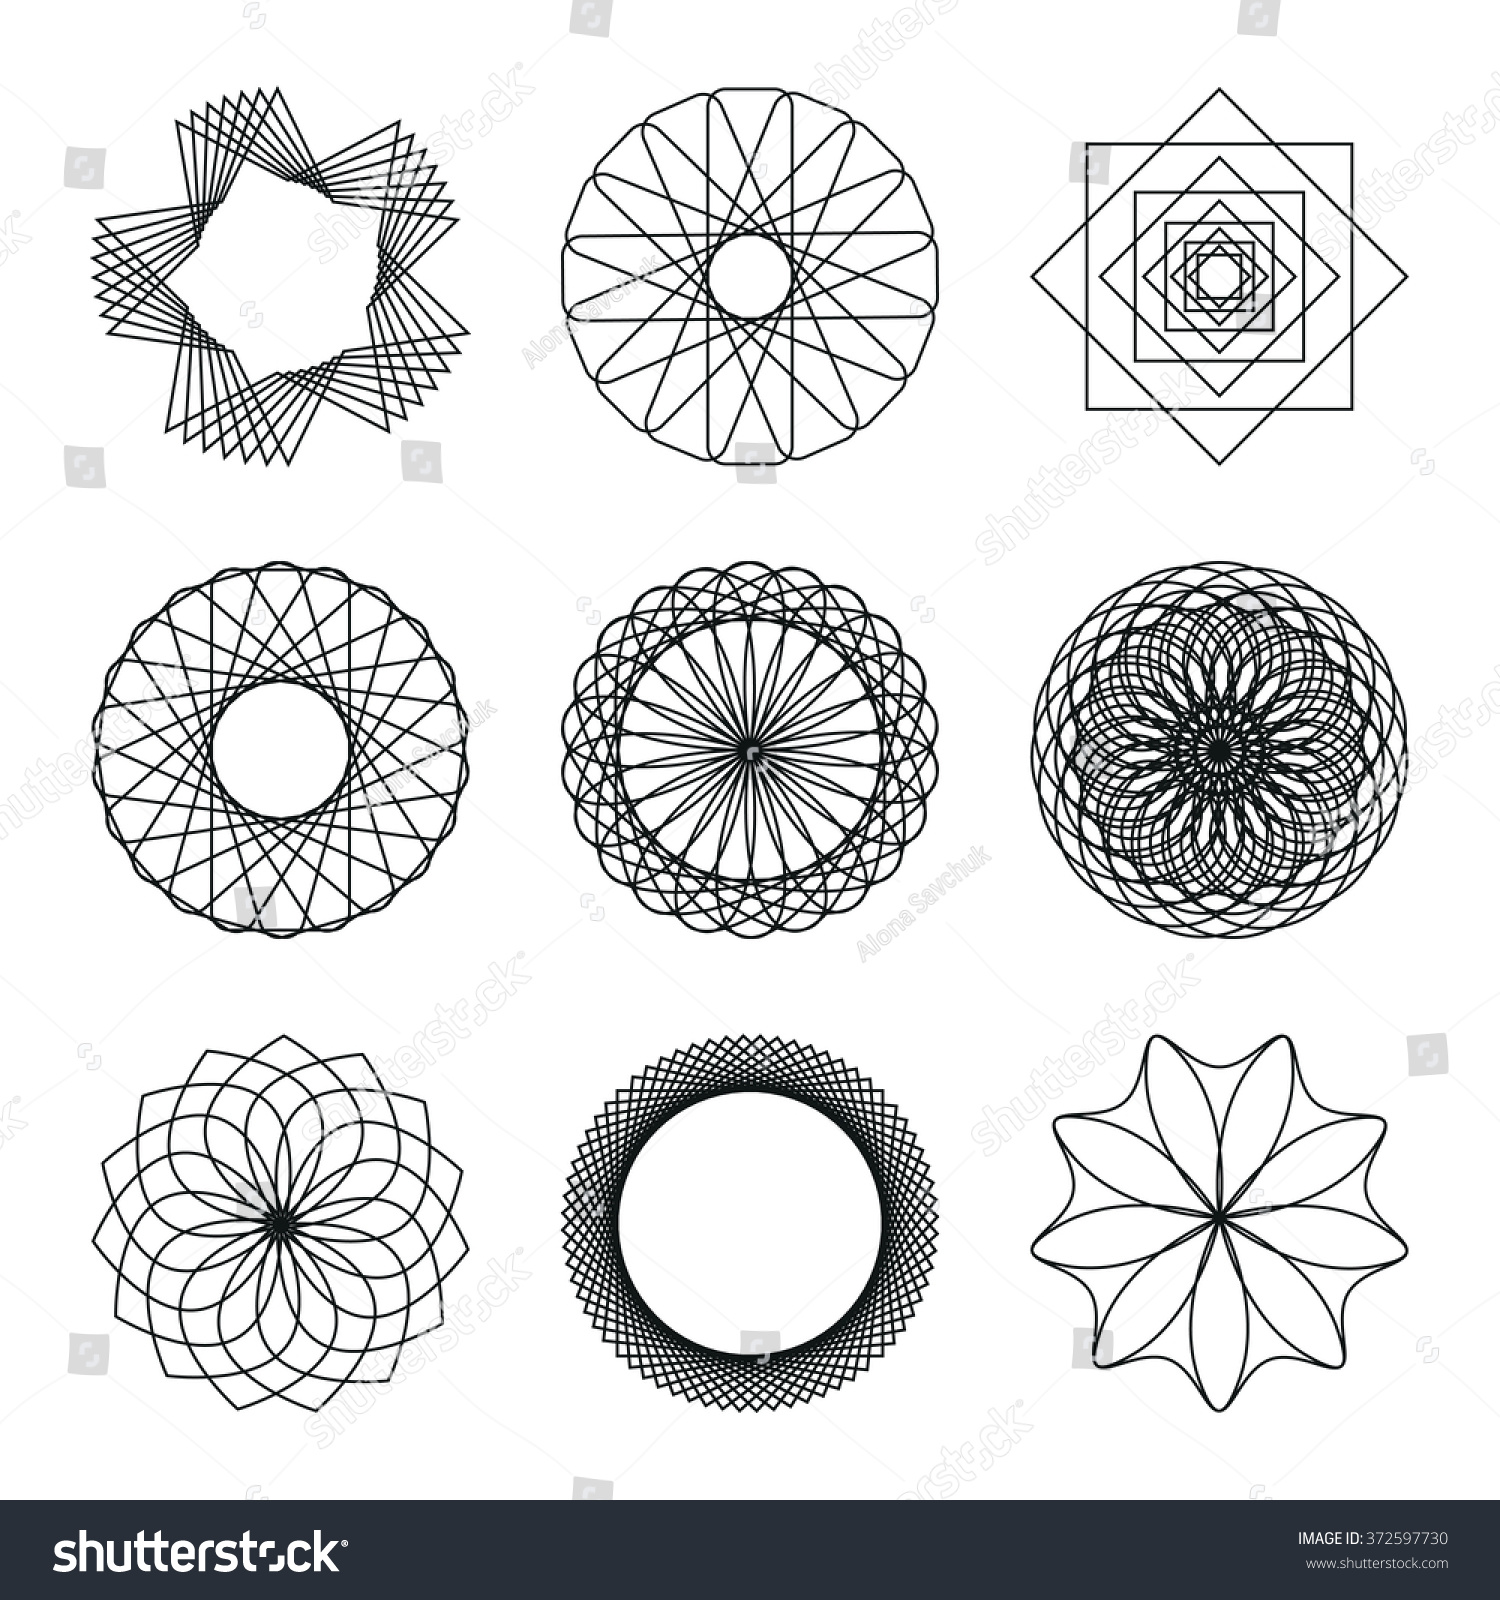 Overlapping circles grid  Wikipedia